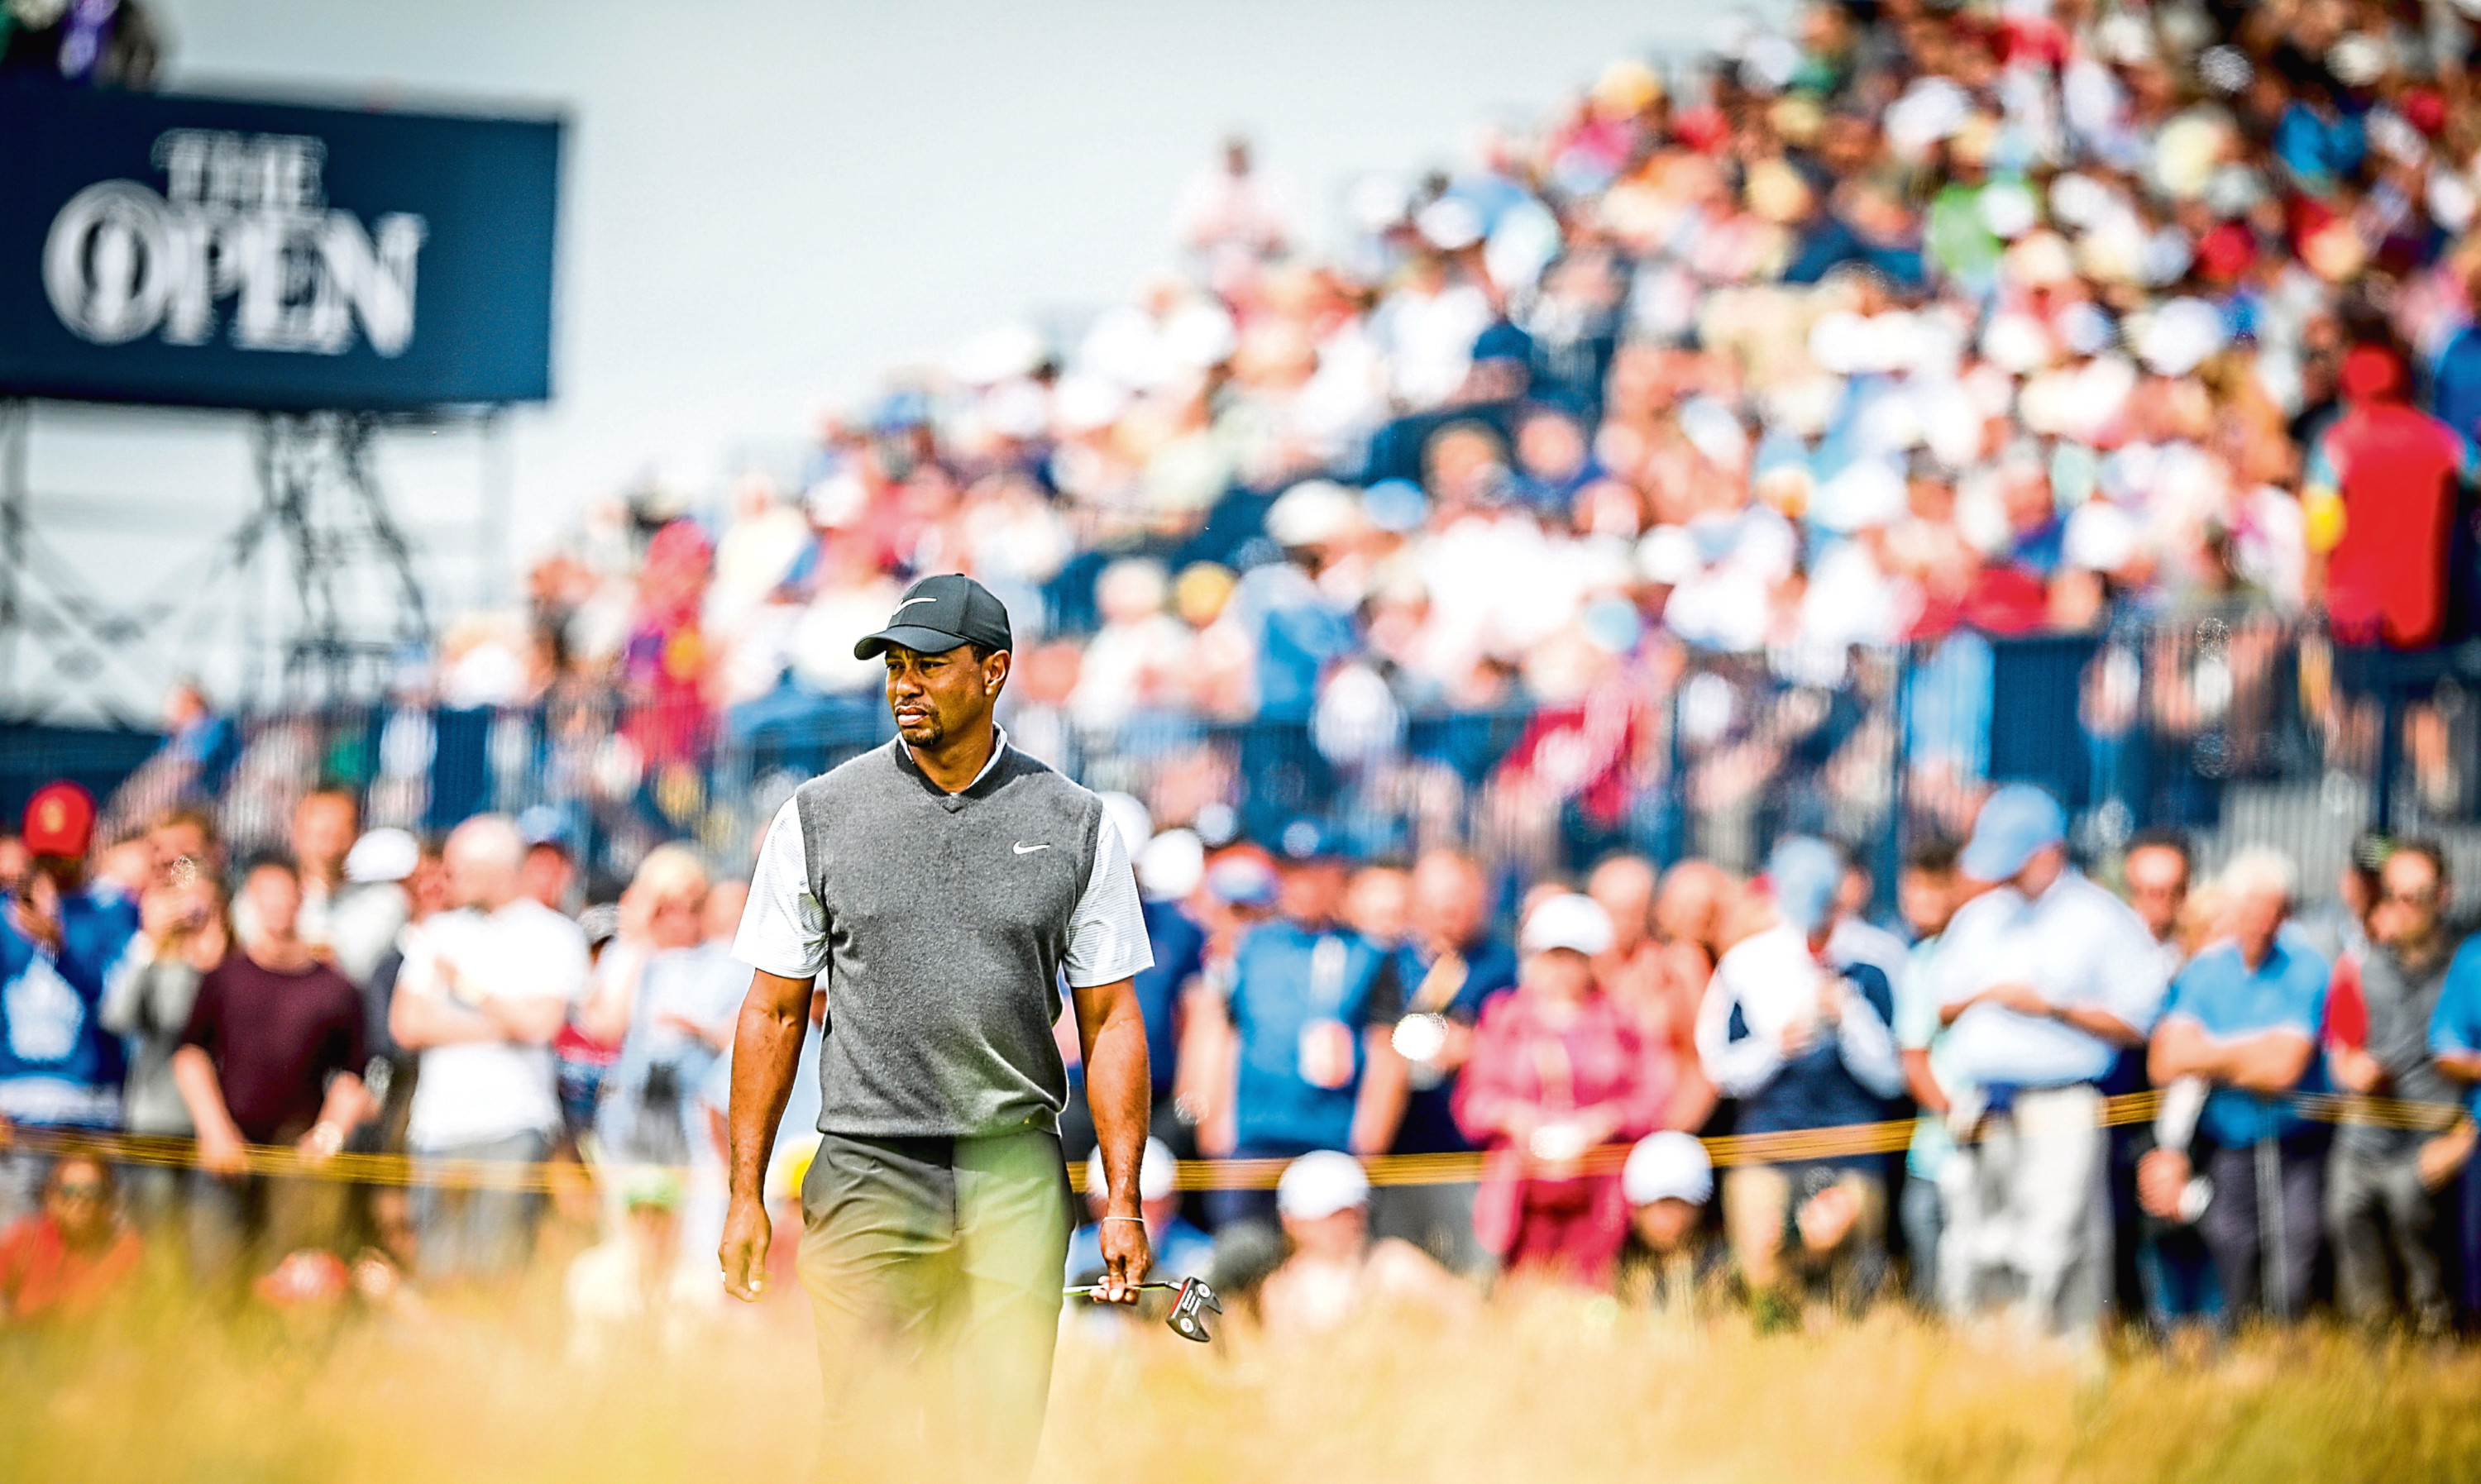 Tens of thousands of golf fans descended on Carnoustie to see global superstars such as Tiger Woods on the course.